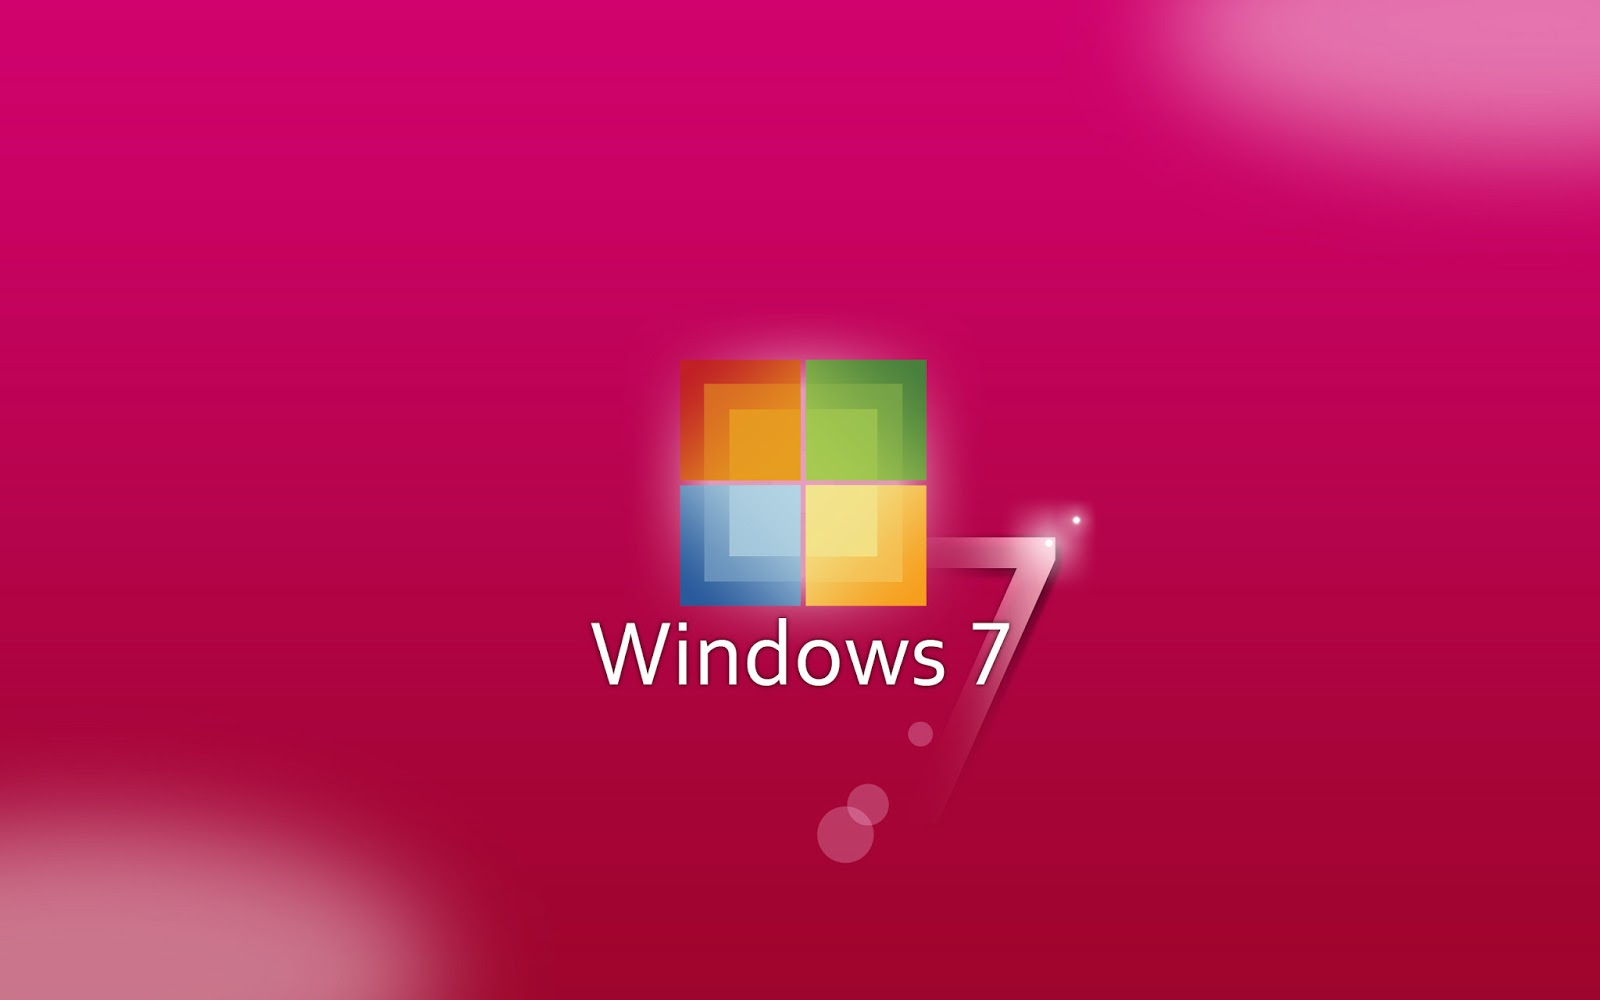 Windows 7 Wallpaper Pink